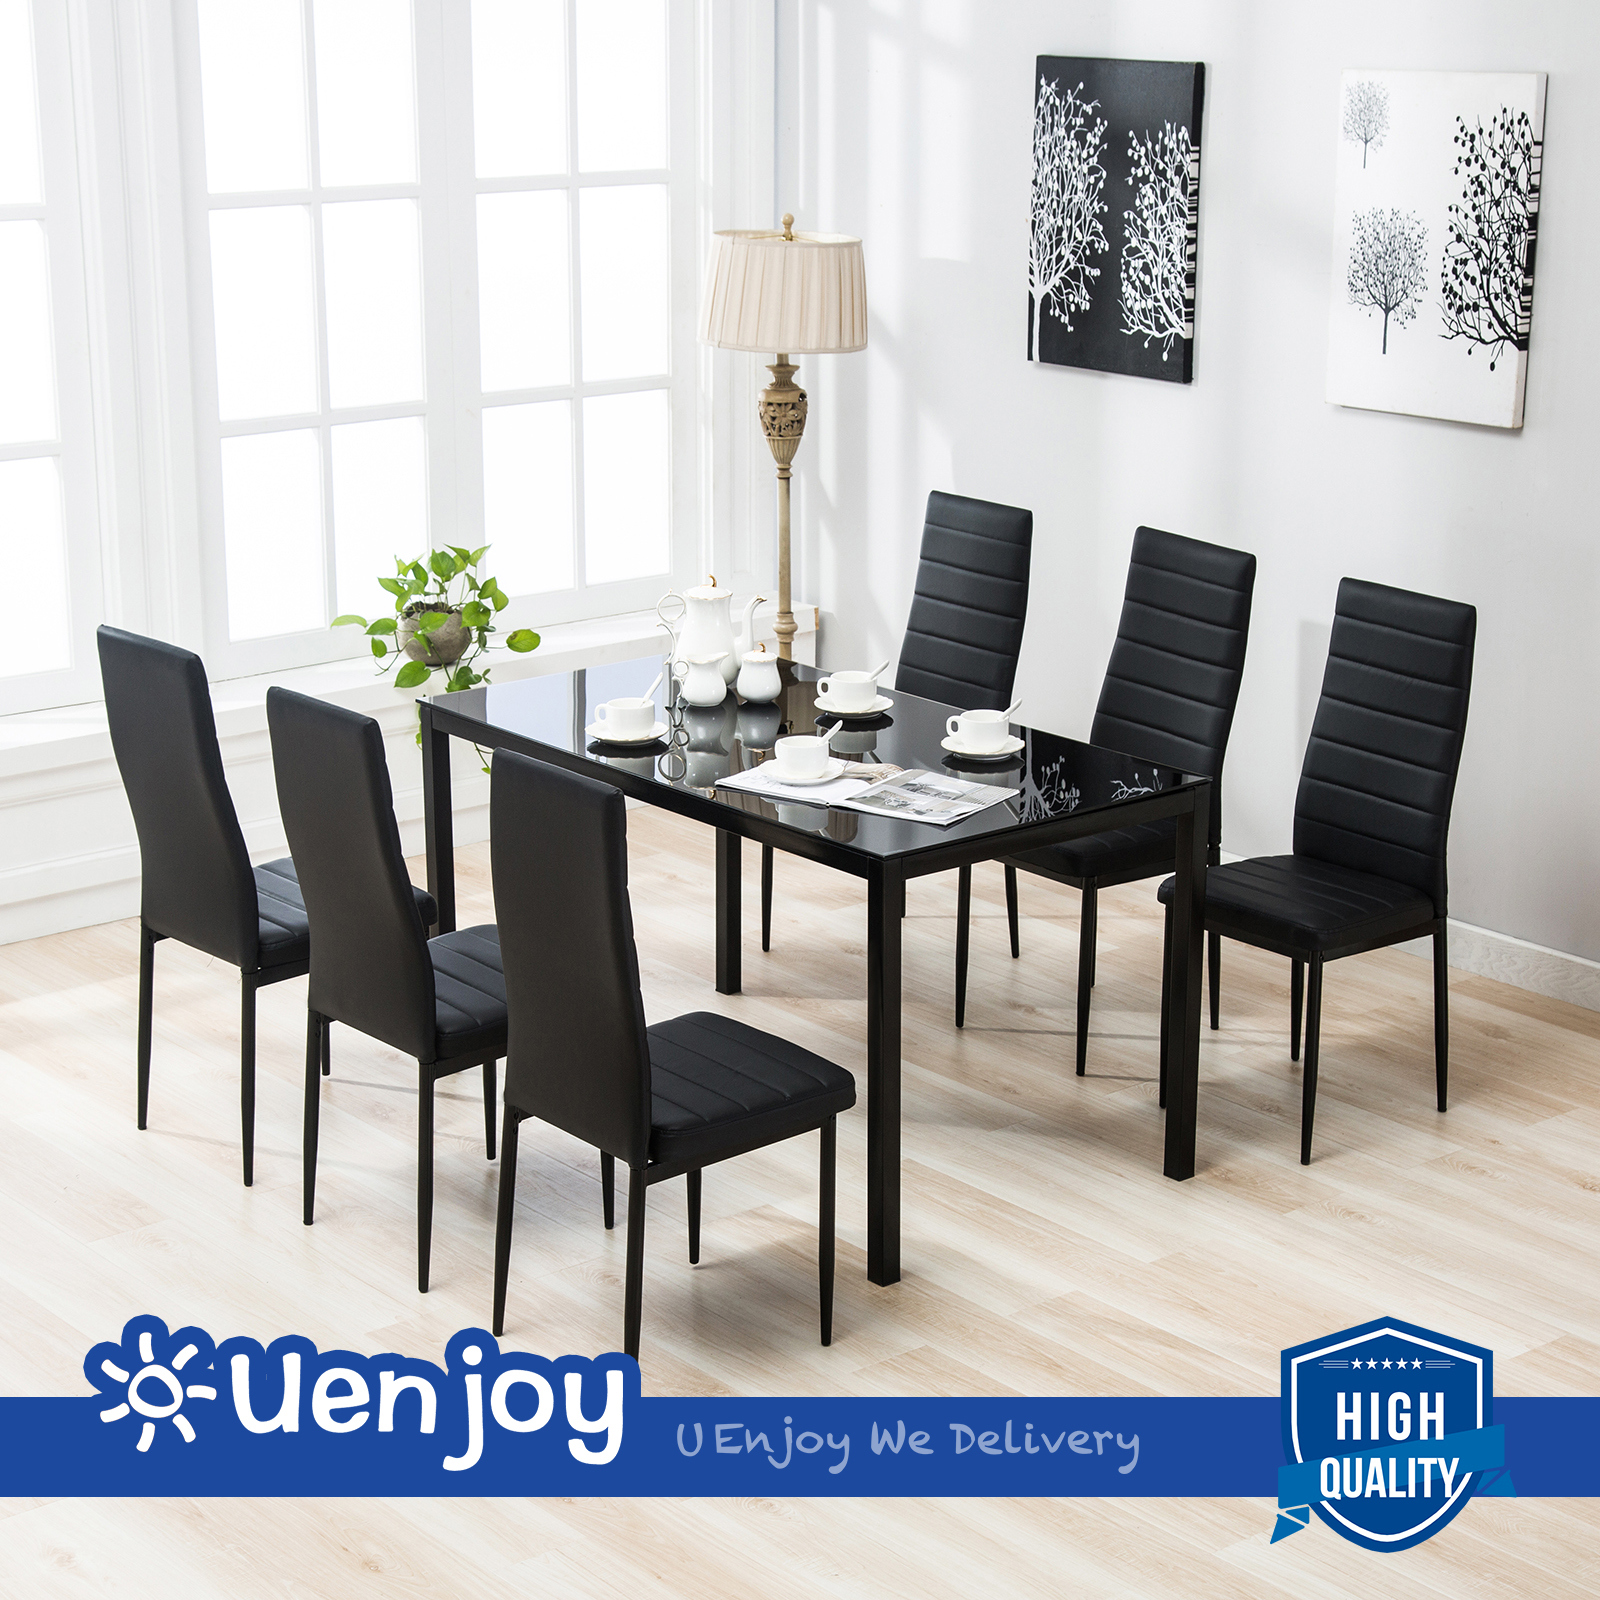 Mecor 7 Piece Dining Table Set 6 Chairs Black Glass Metal Kitchen Room Furniture